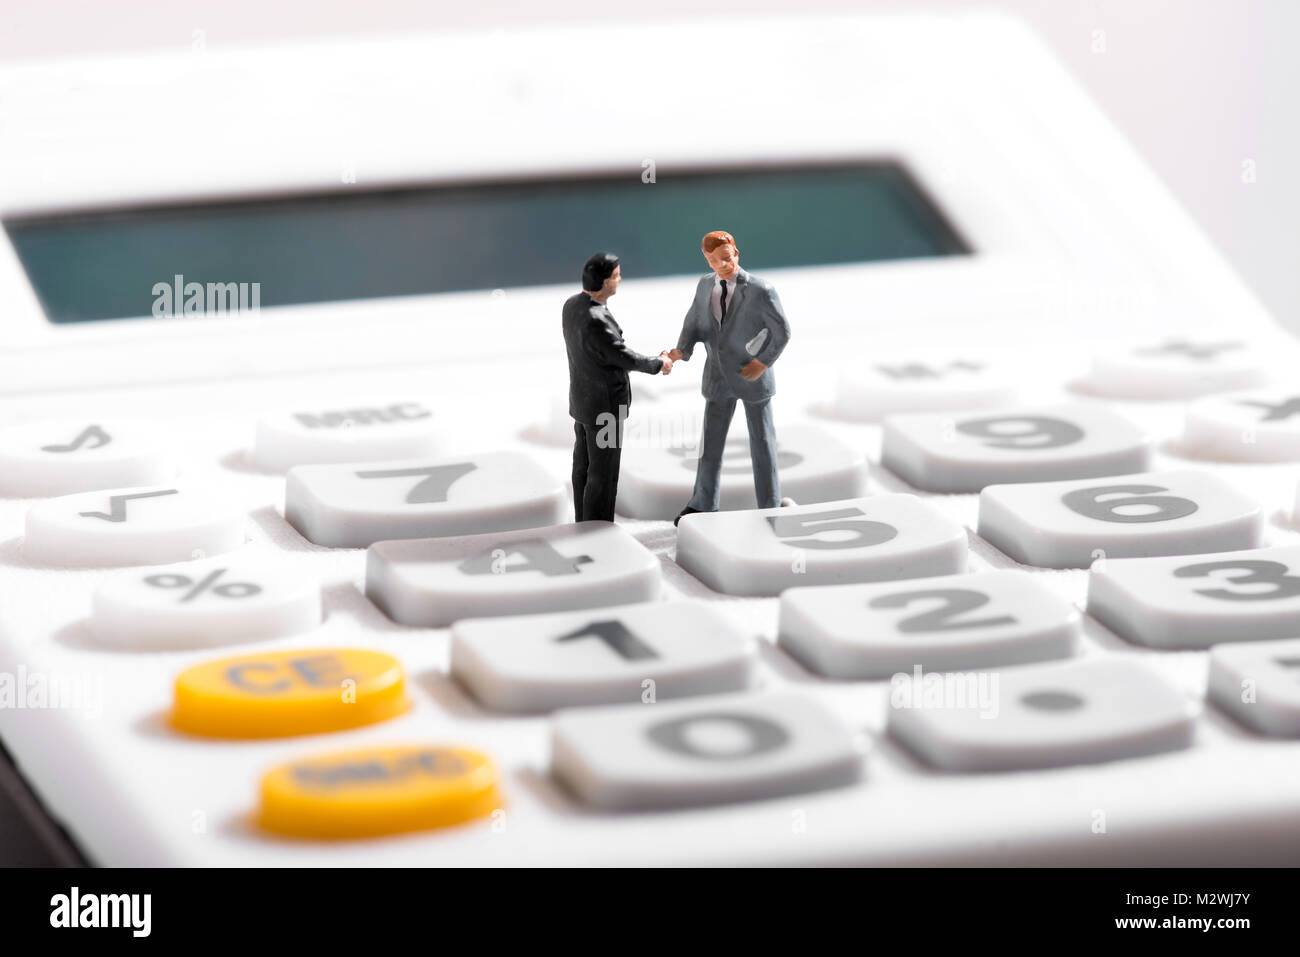 Business concept with two figurines of businessmen standing on calculator - Stock Image